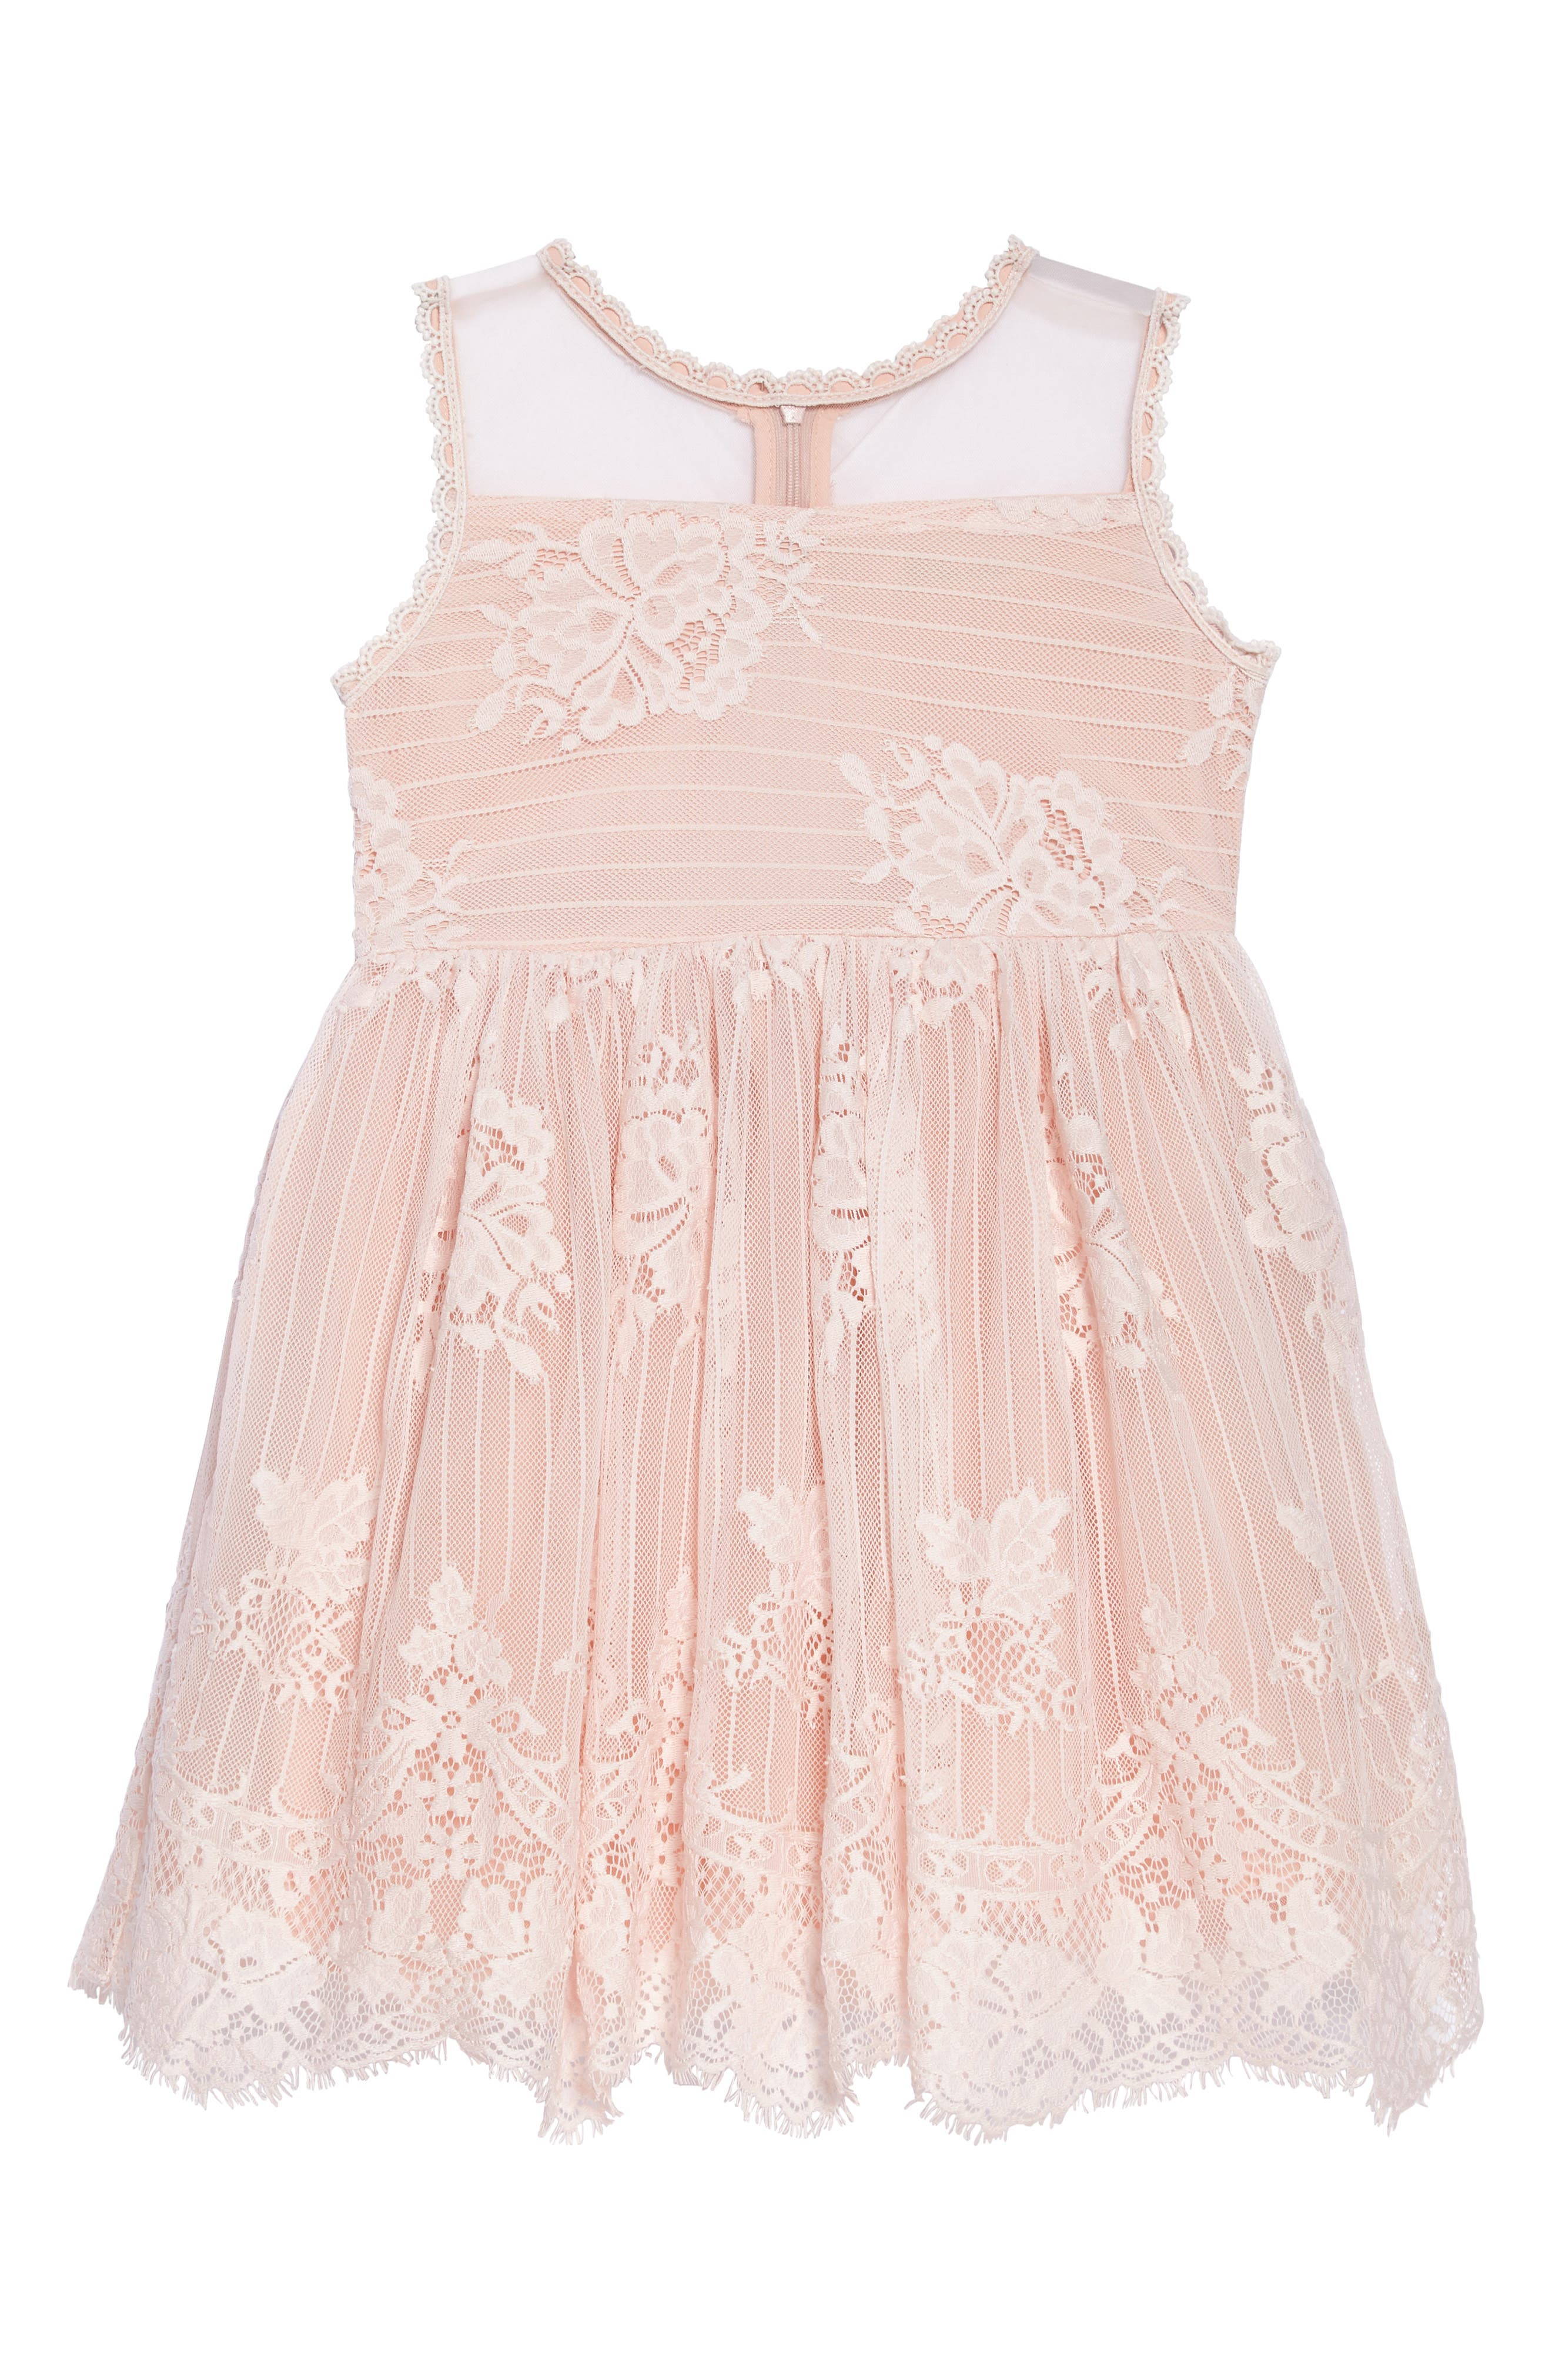 Lace Fit & Flare Dress,                             Main thumbnail 1, color,                             Pink